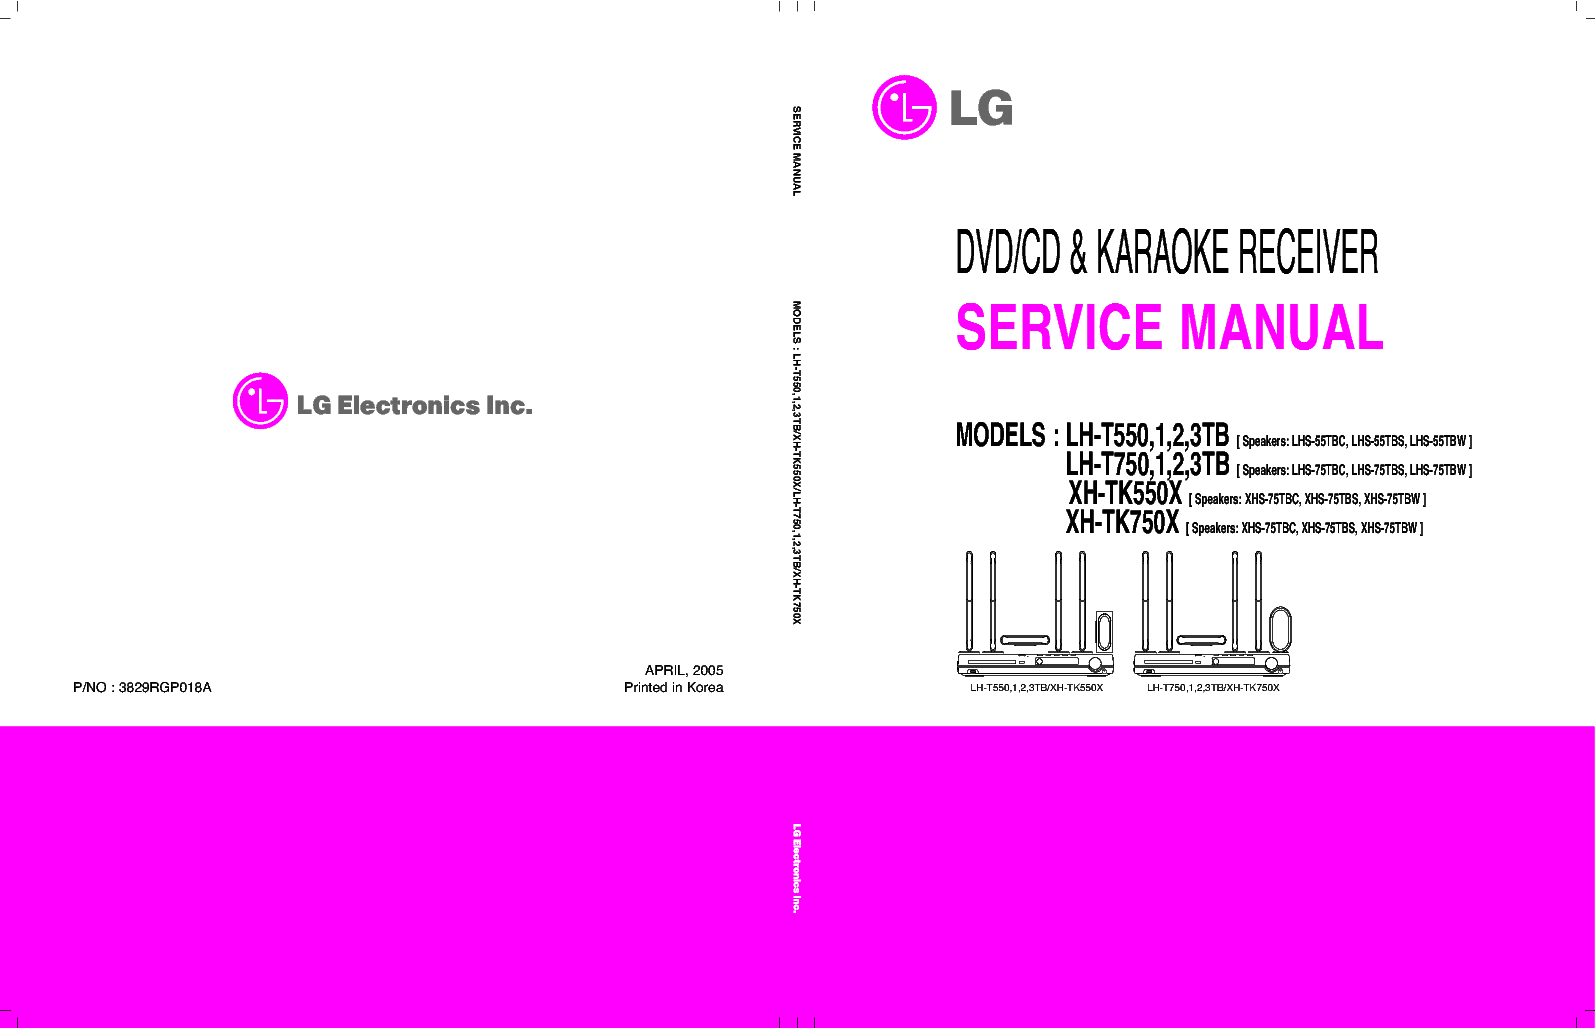 Lg 42ls5700 Tb Service Manual Repair Guide Virgilio Fidanza Mezzo Toyota Estima Wiring Diagram Download Ebook Pdf 42la6130 Manuals And Home Gulfstream American Hustler 500 Gulf War Medals 1991 Previa